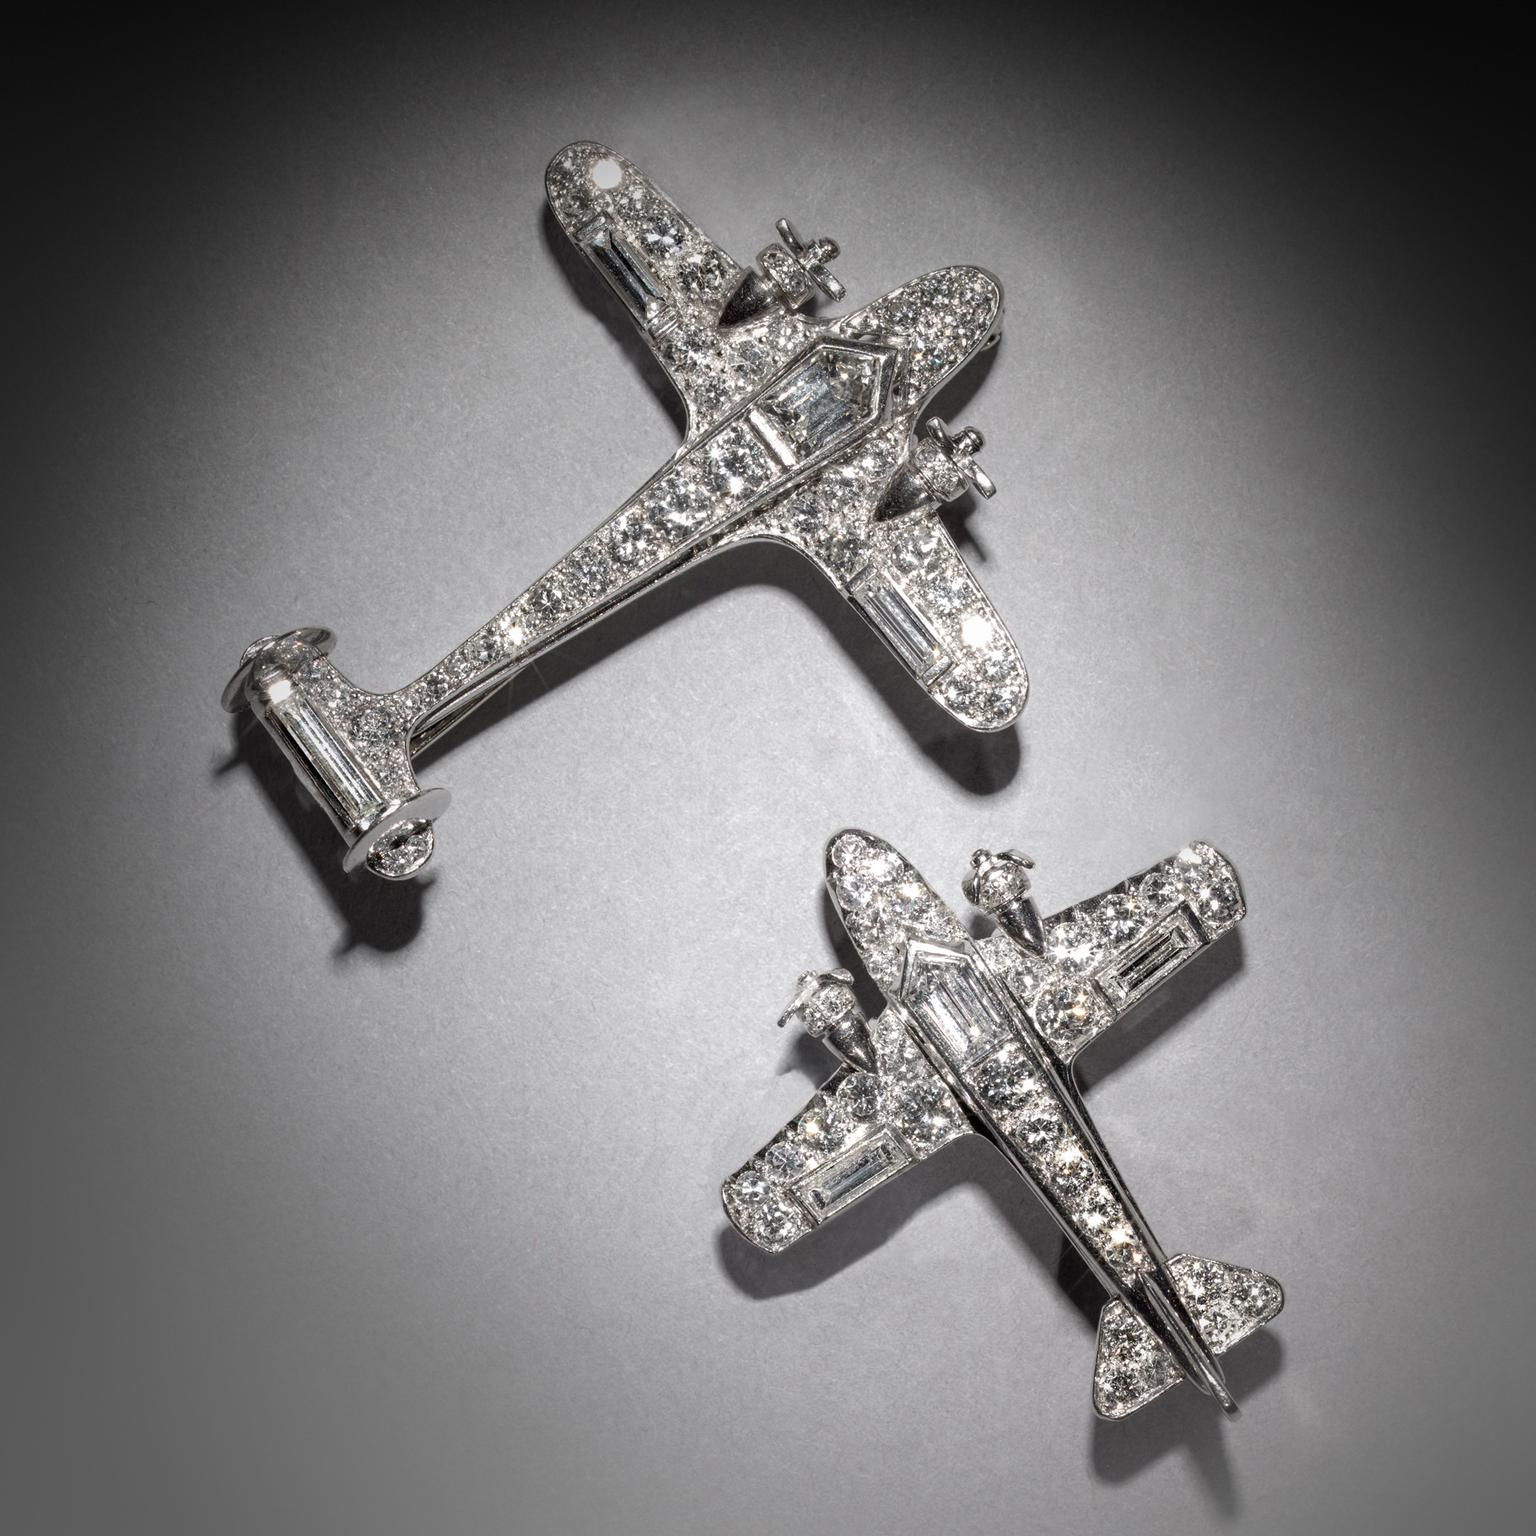 Neil Lane Platinum diamond airplane brooch, signed Cartier